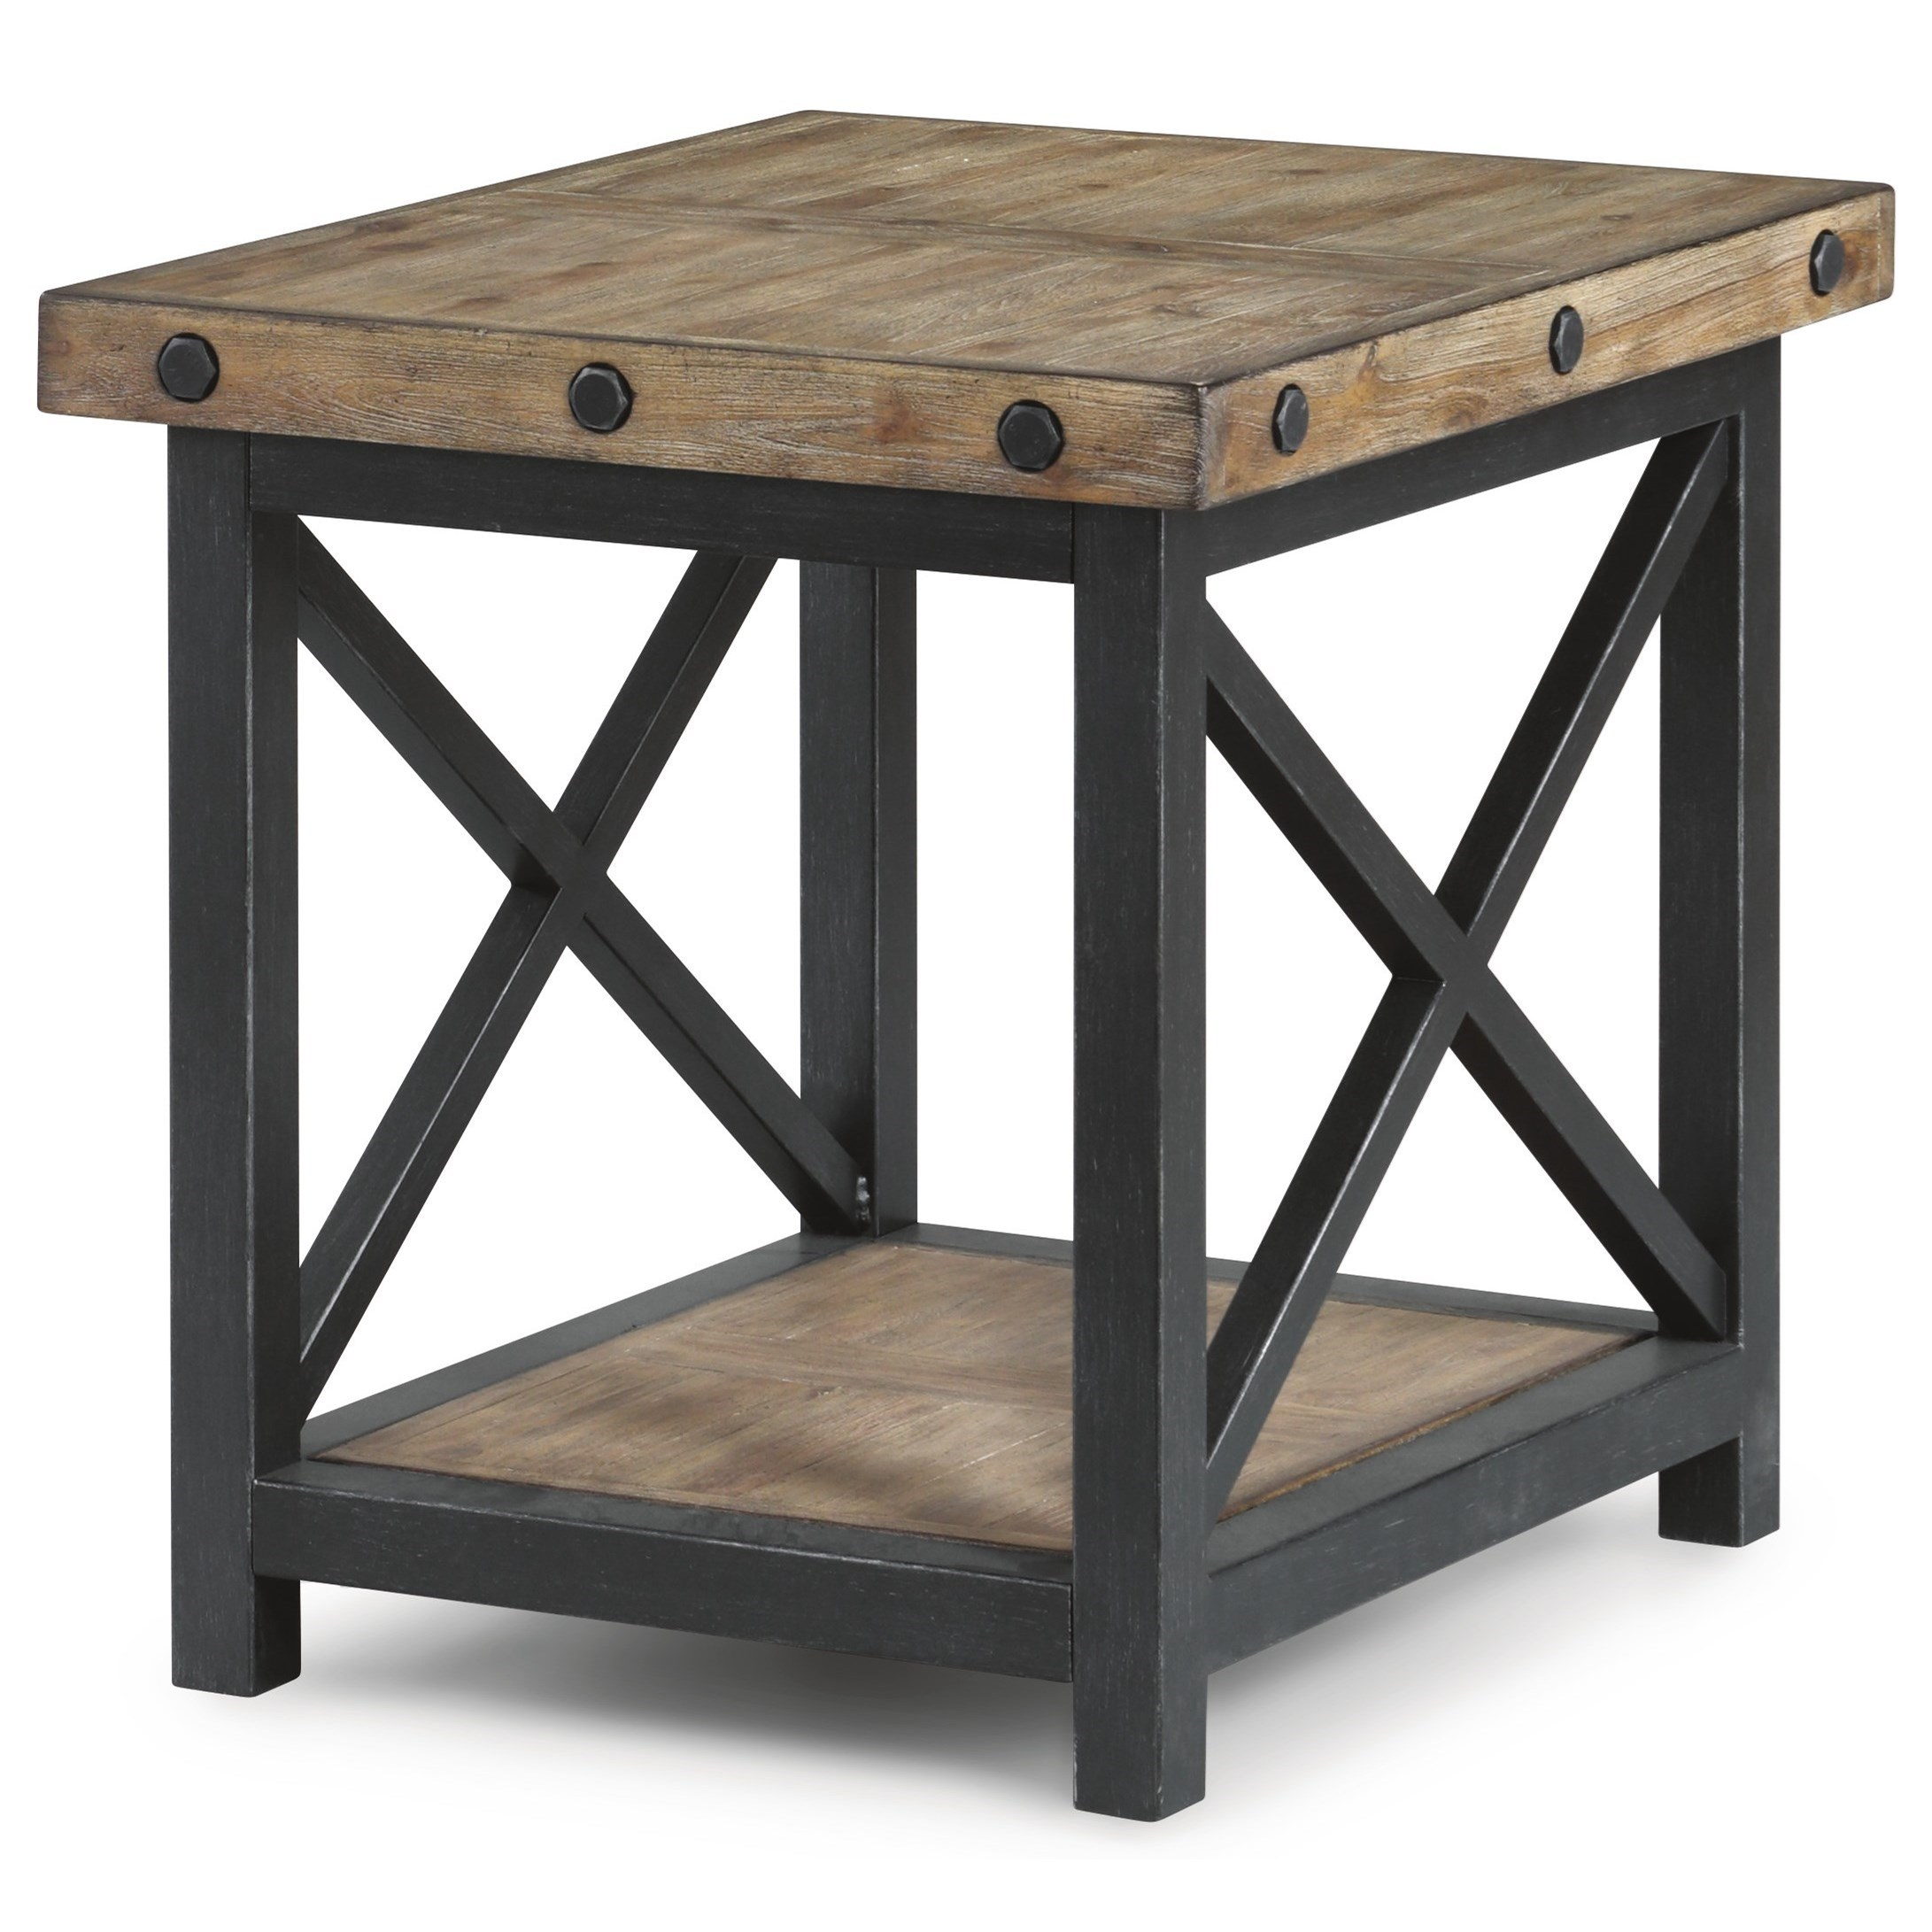 Calahan Calahan End Table by Flexsteel Wynwood Collection at Morris Home